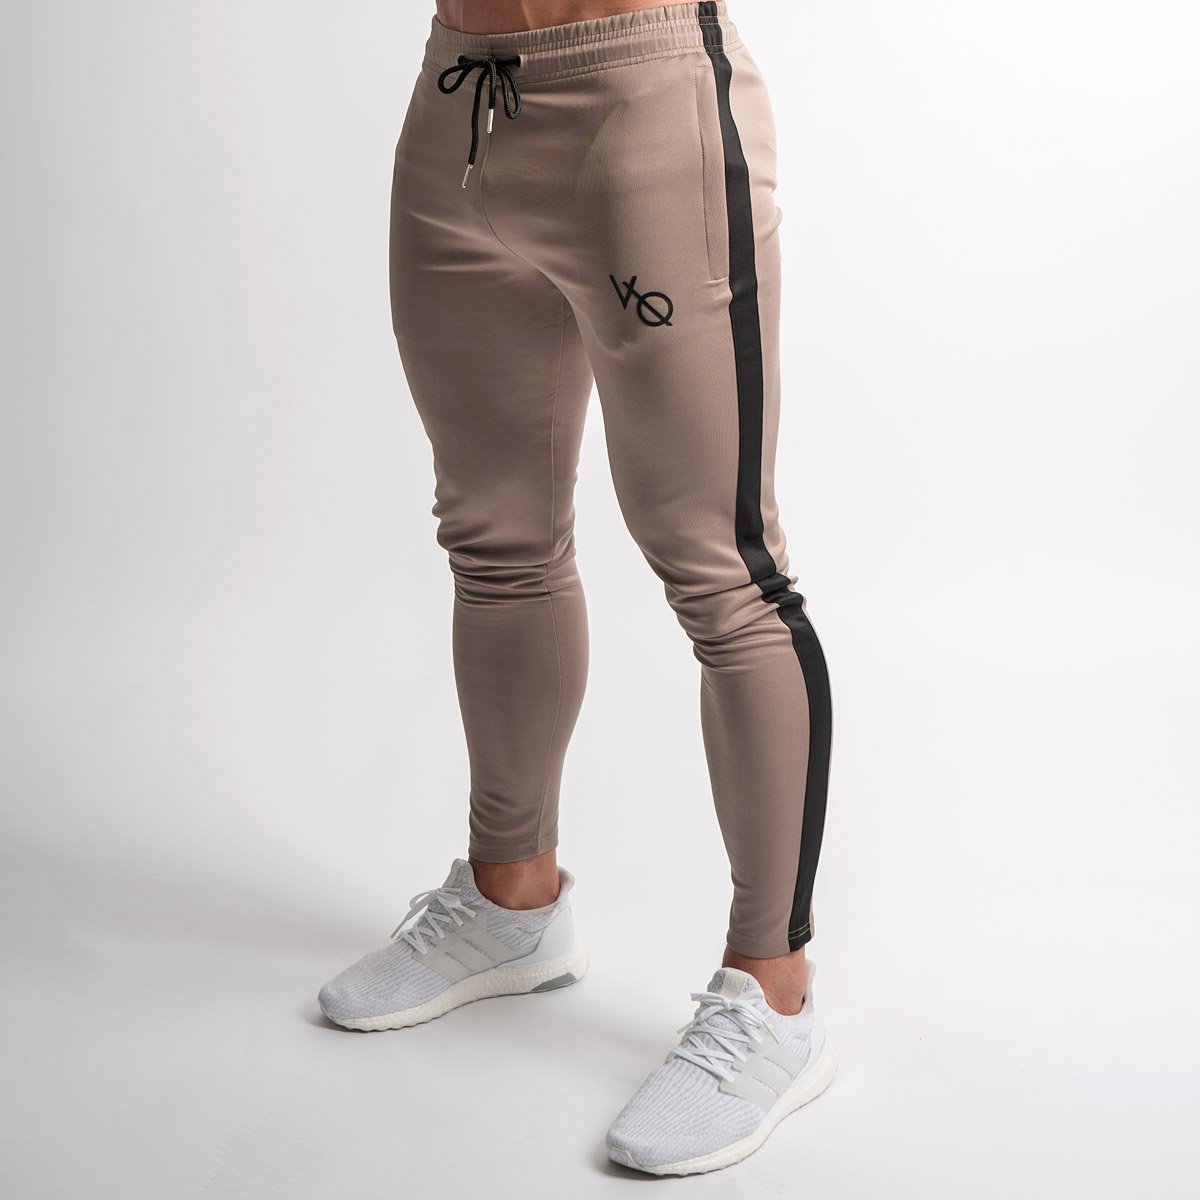 Cross Border For 2019 New Style VQ Men's Fitness Athletic Pants Zipper Pocket Sports Running Trousers Manufacturers Direct Selli